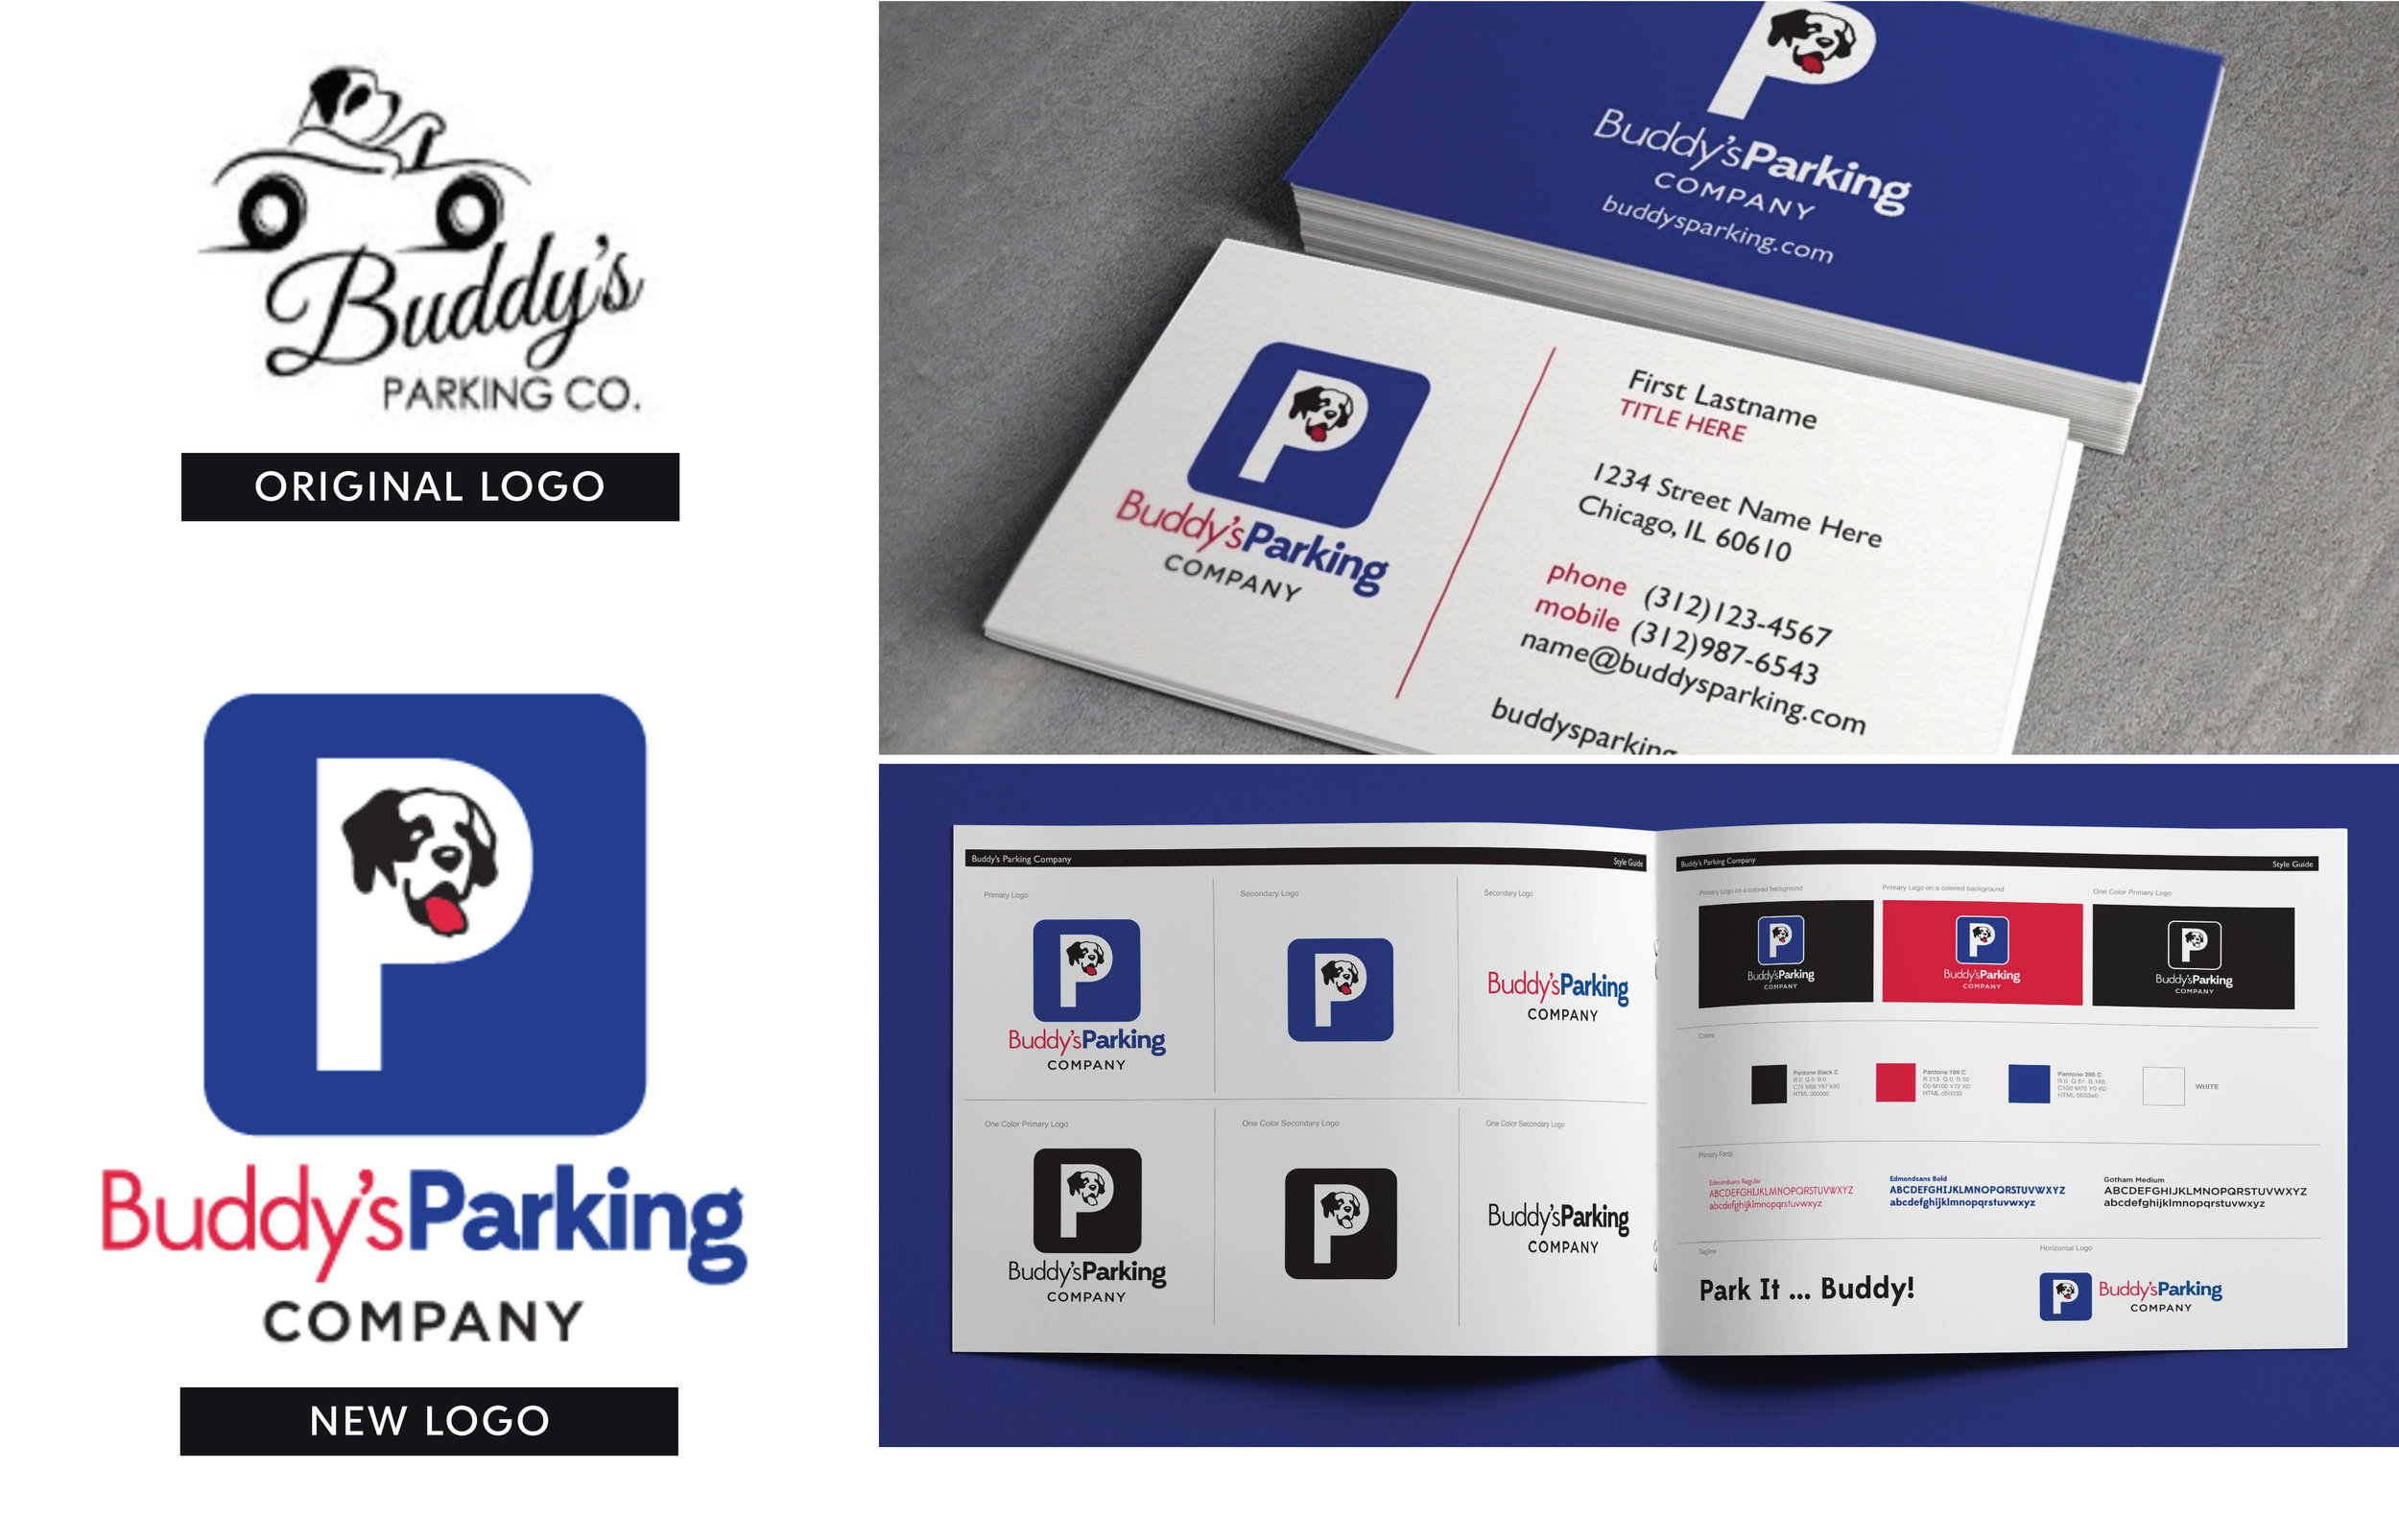 Buddy Parking Presentation  copy.jpg